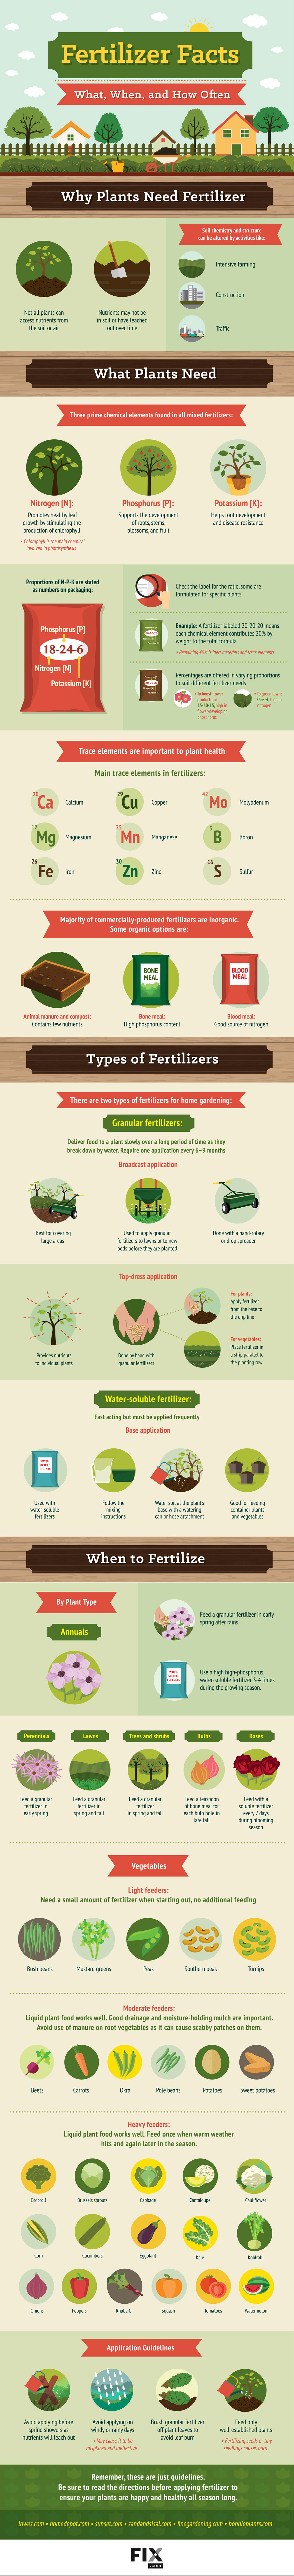 Fertilizer Facts What When and How Often Gardening Infographic